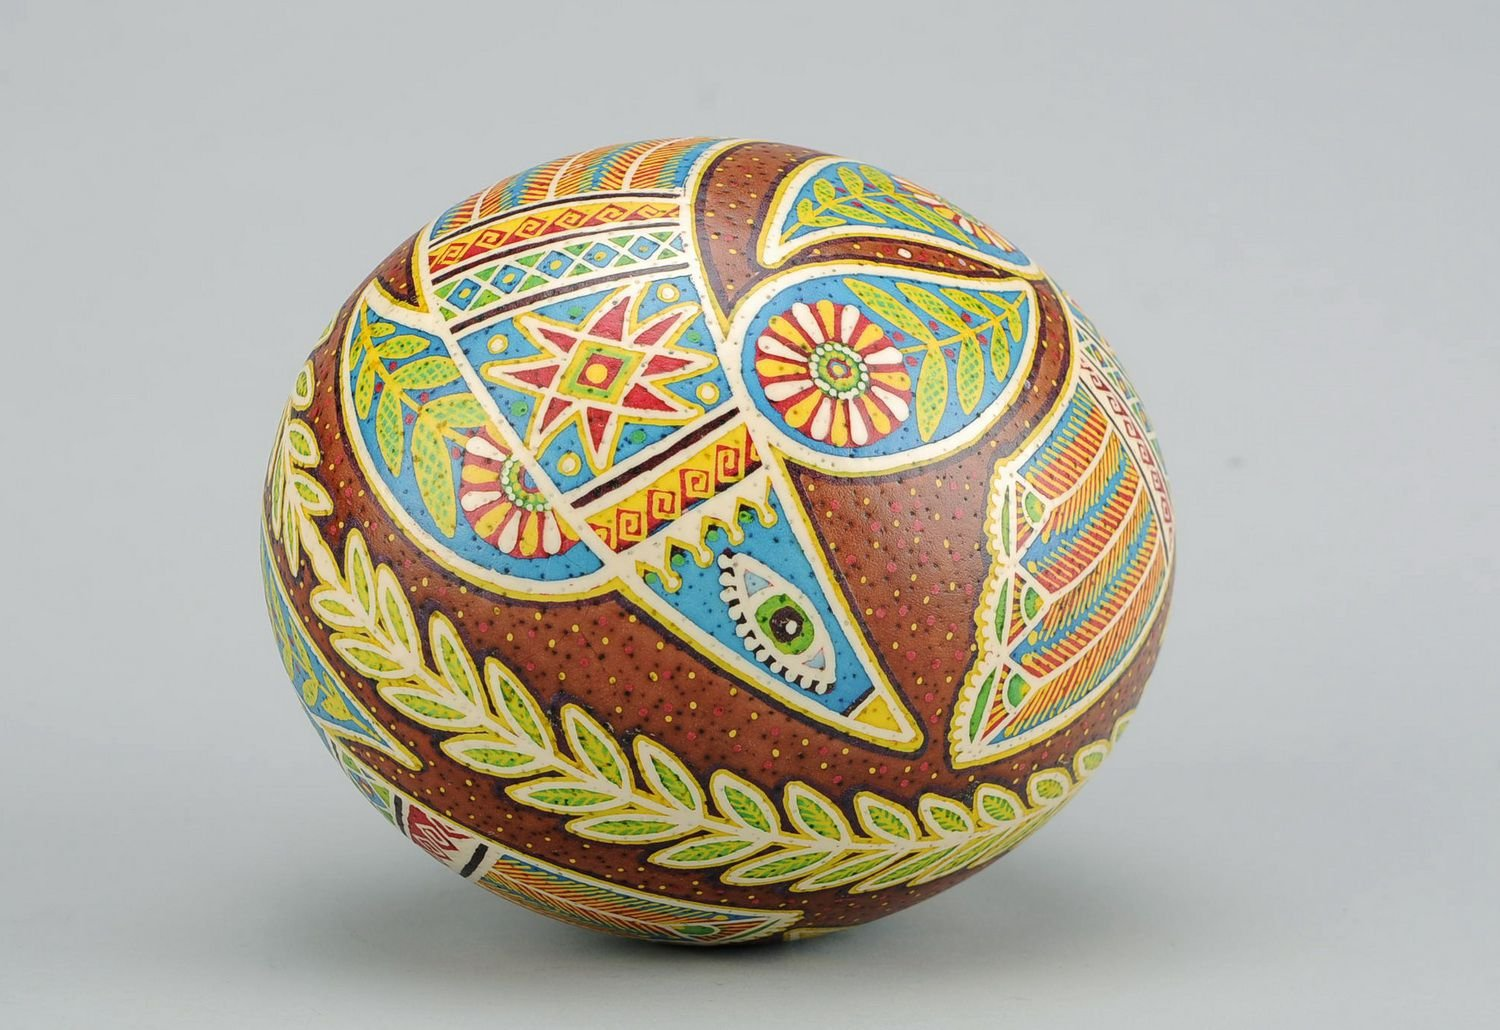 Painted Handmade Easter Egg ''Dance of Love'' Holiday Decoration by MadeHeart   Buy handmade goods (Image #4)